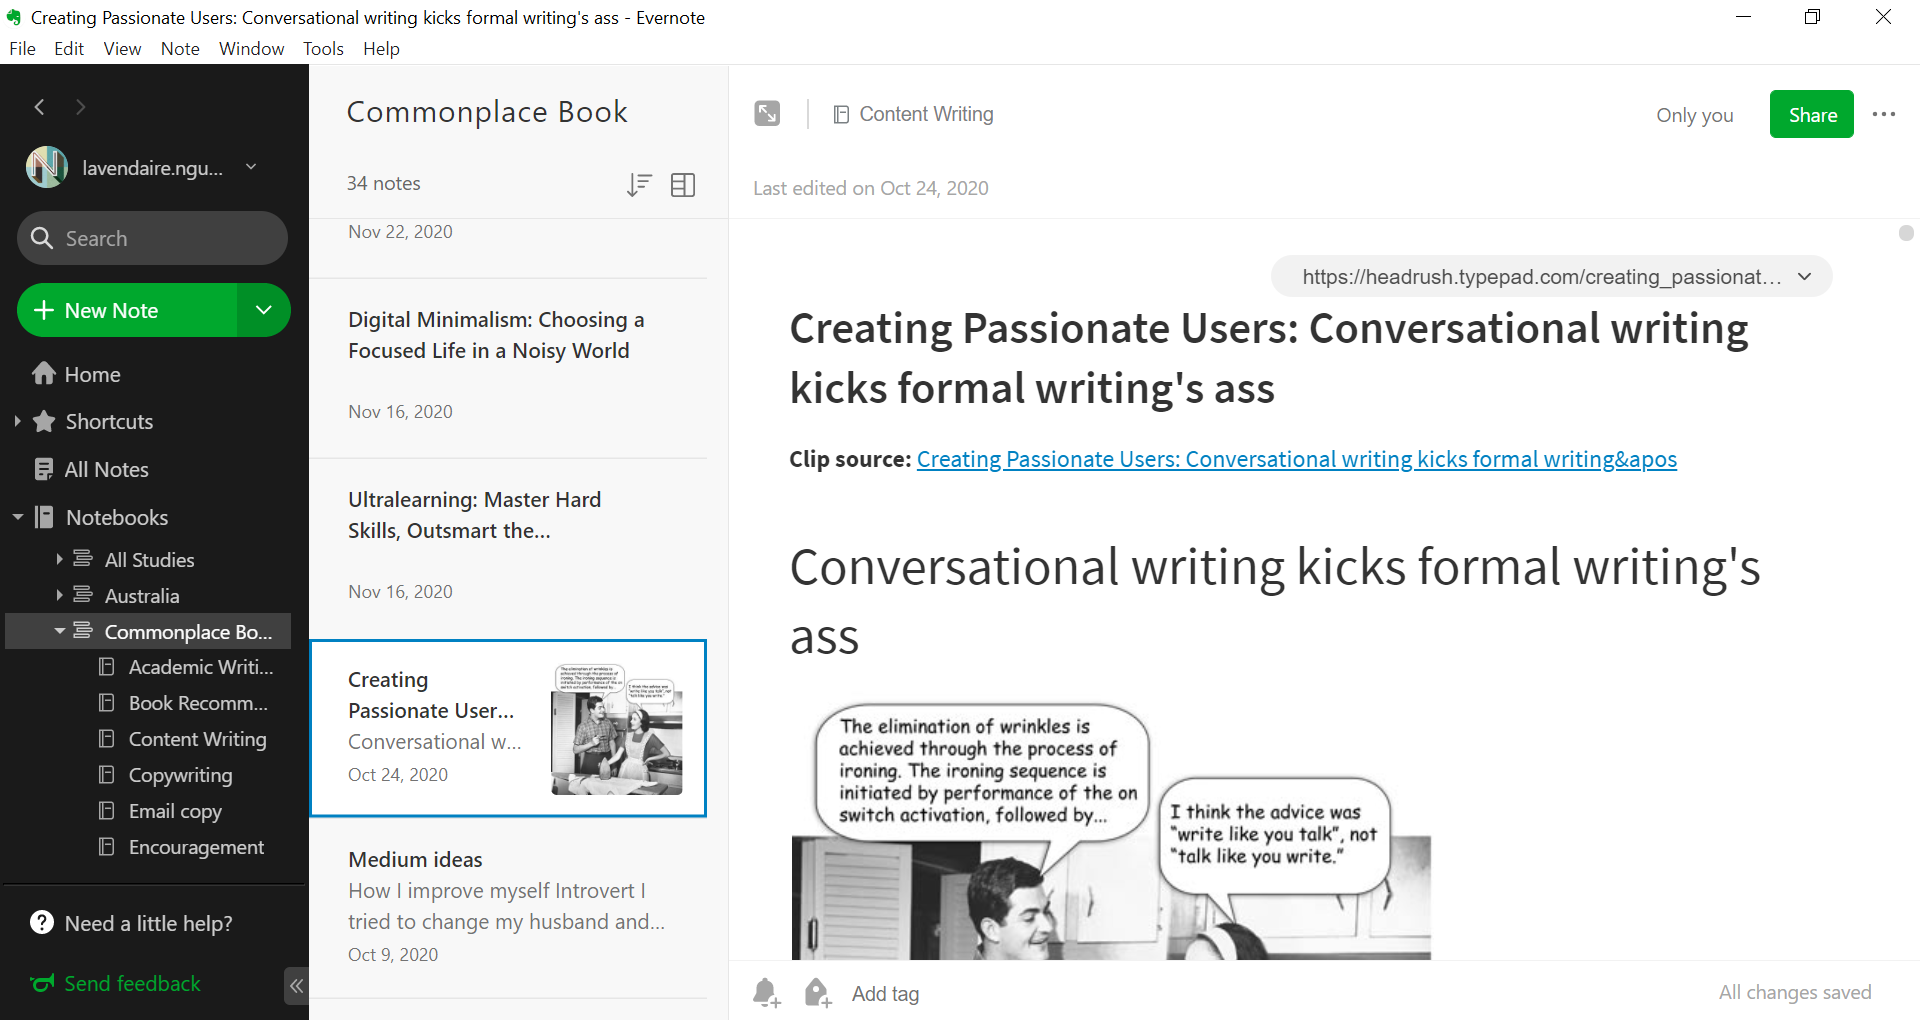 You can create different notebooks for different topics and add tags to organize your ideas on Evernote.